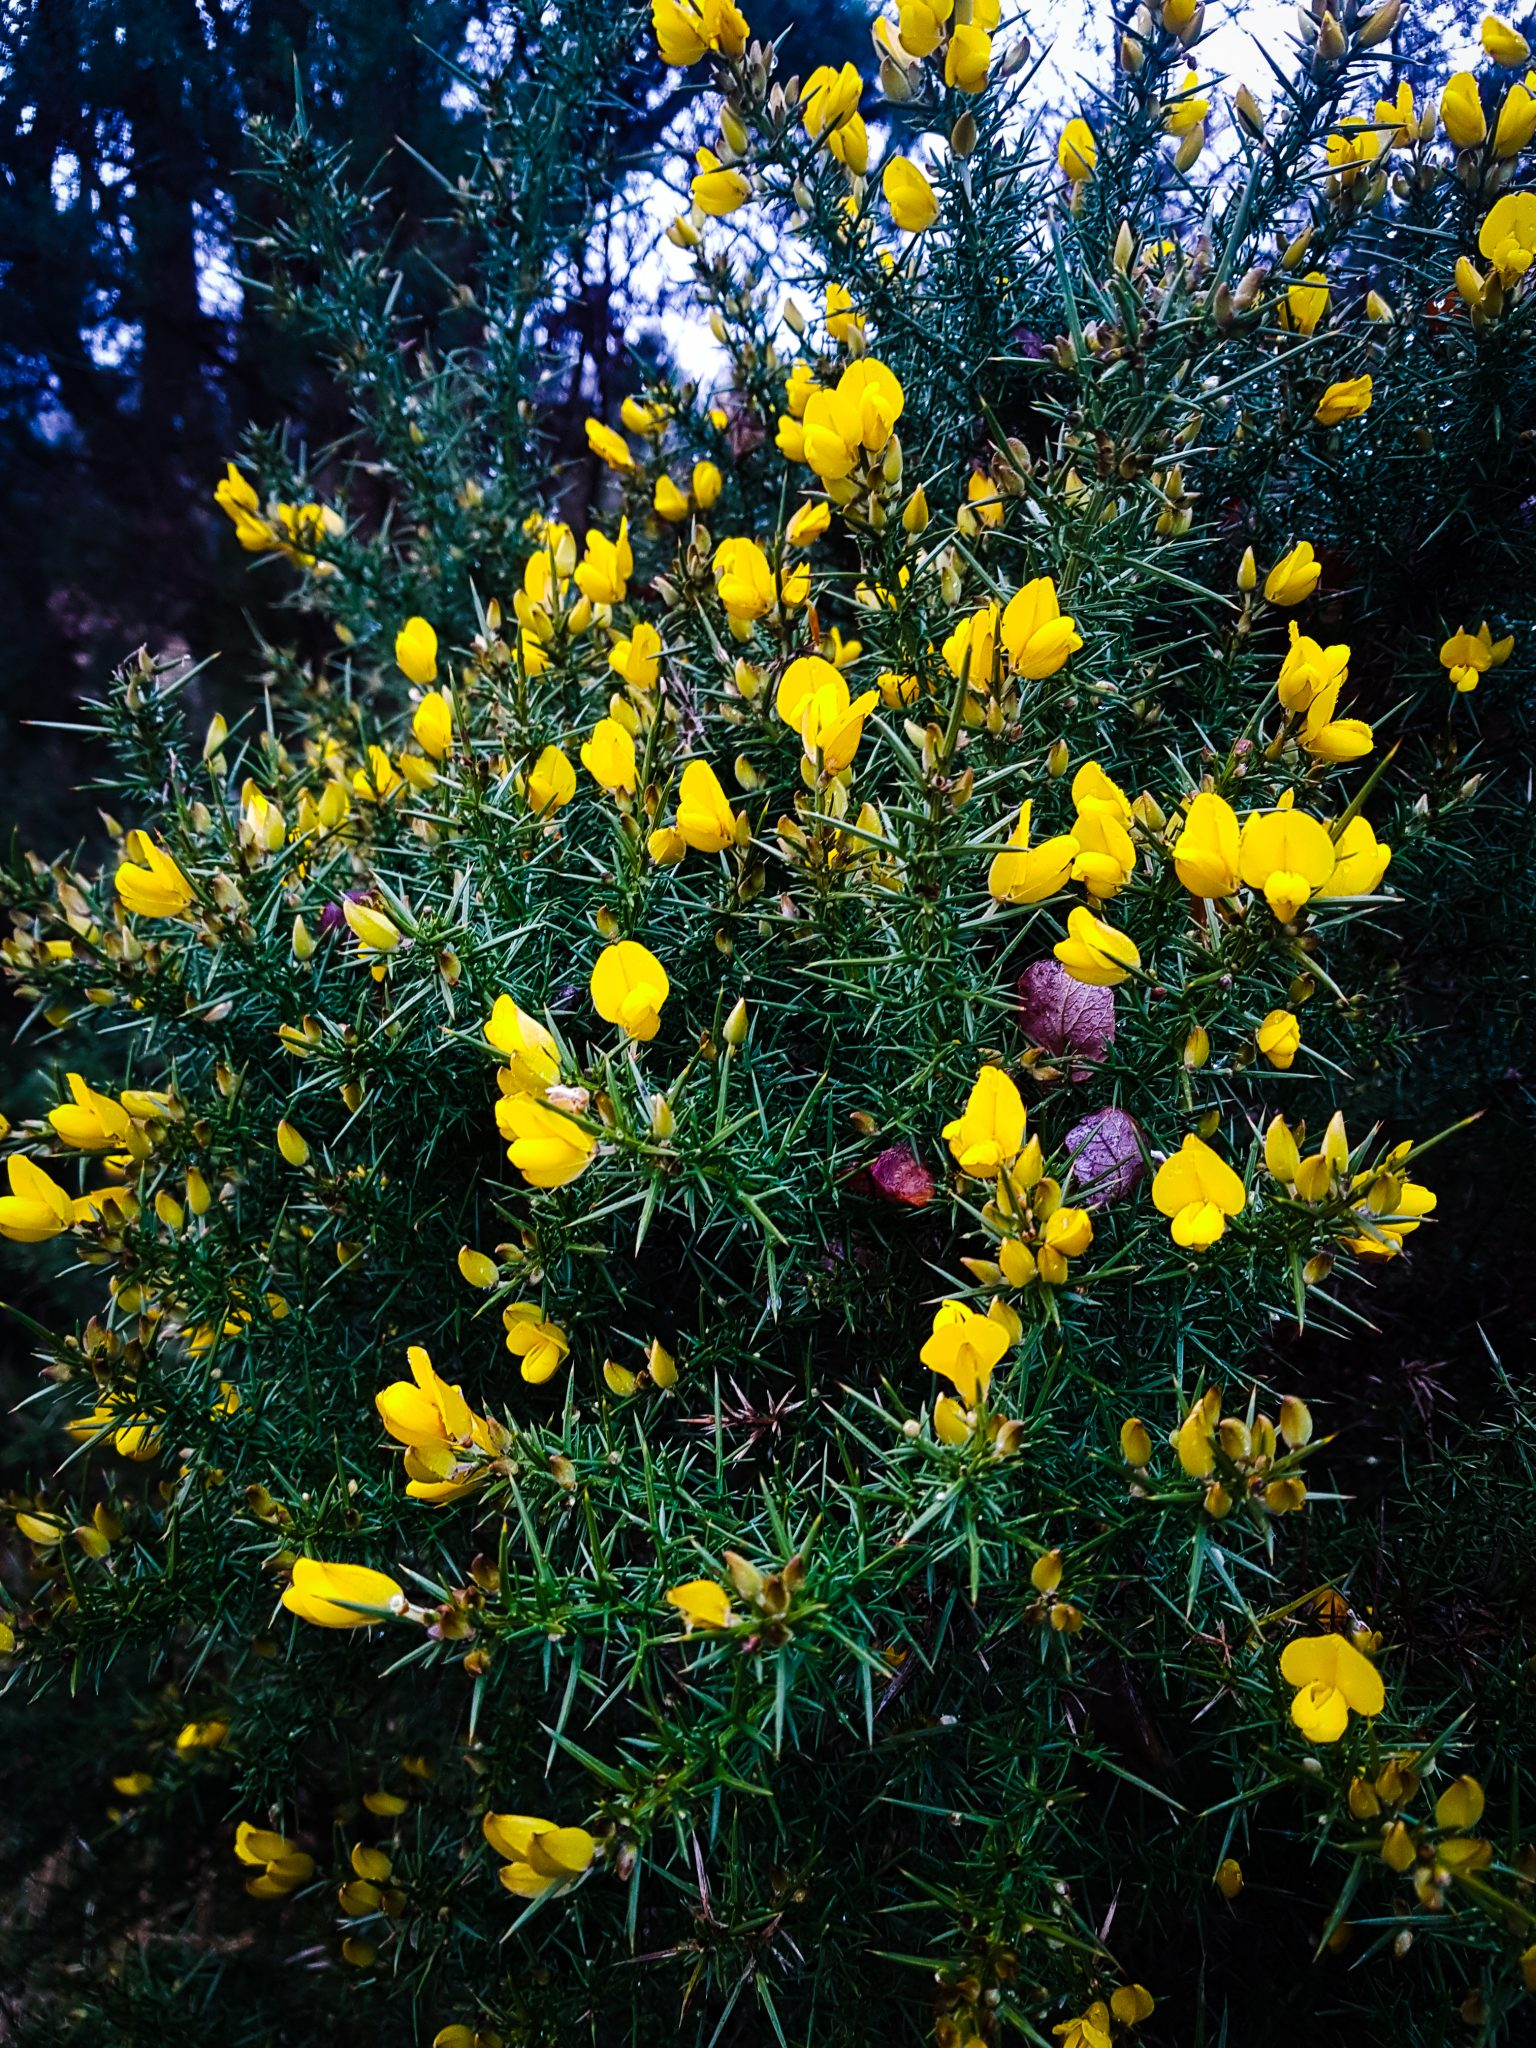 Scottish Gorse in Bloom near Bracklinn, Callander